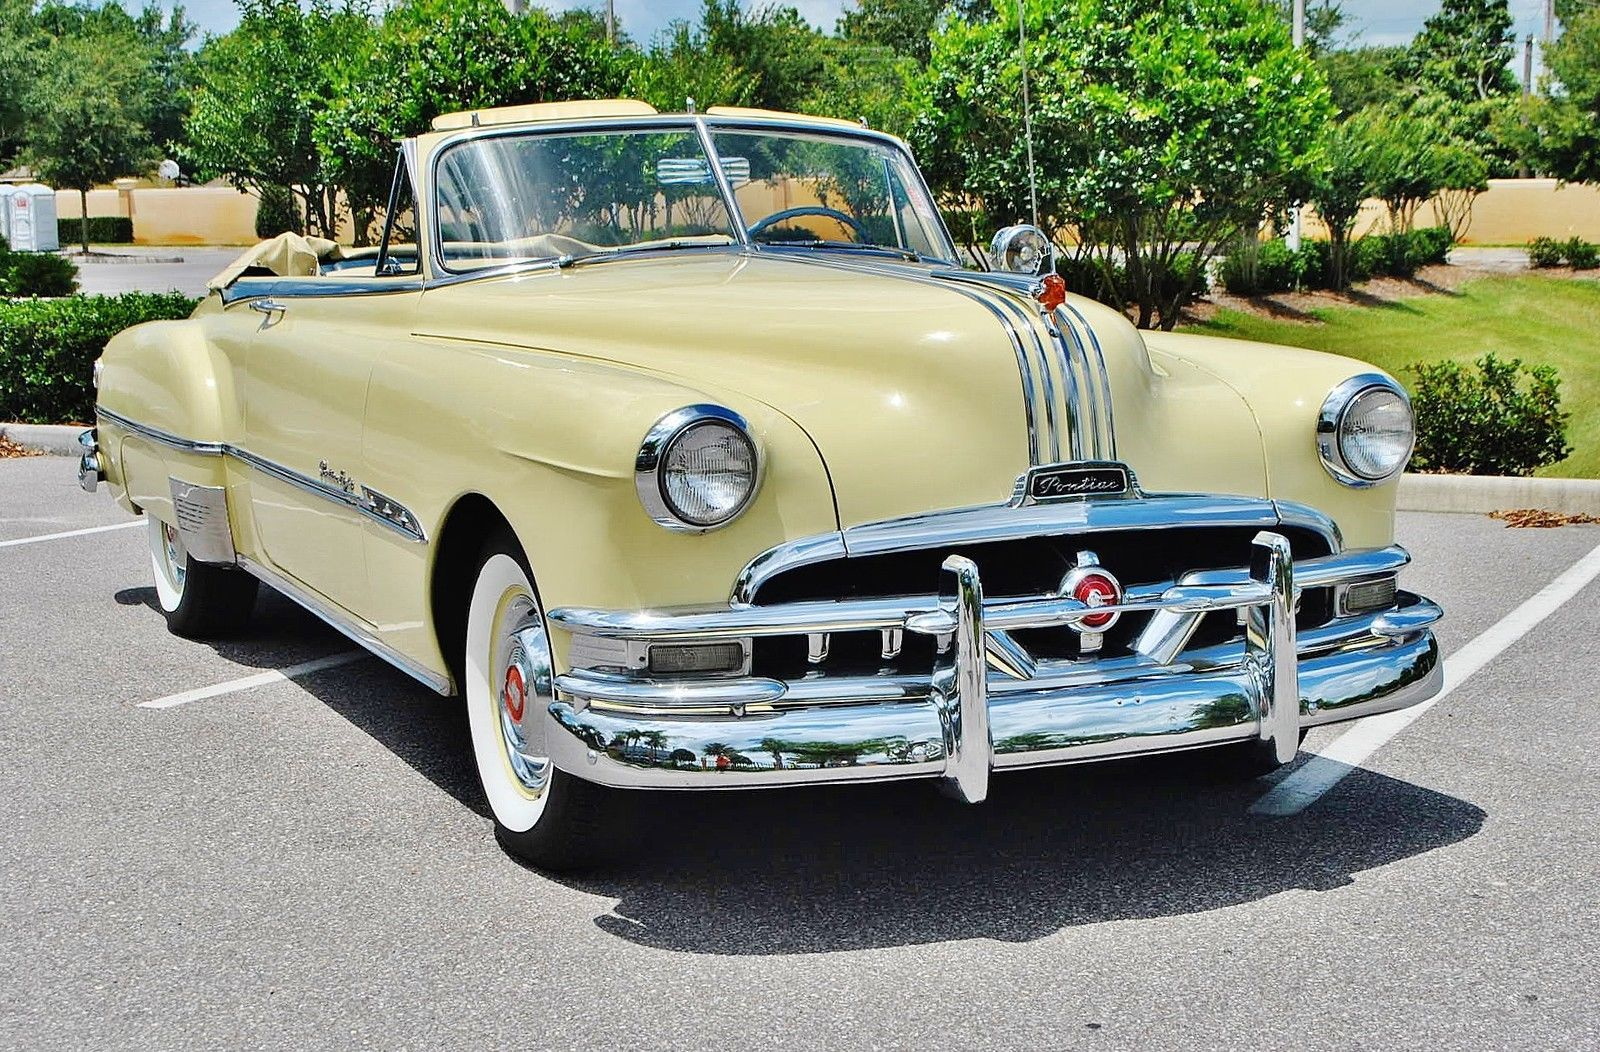 51 Pontiac Other Convertible | eBay | Adrenaline Capsules ...